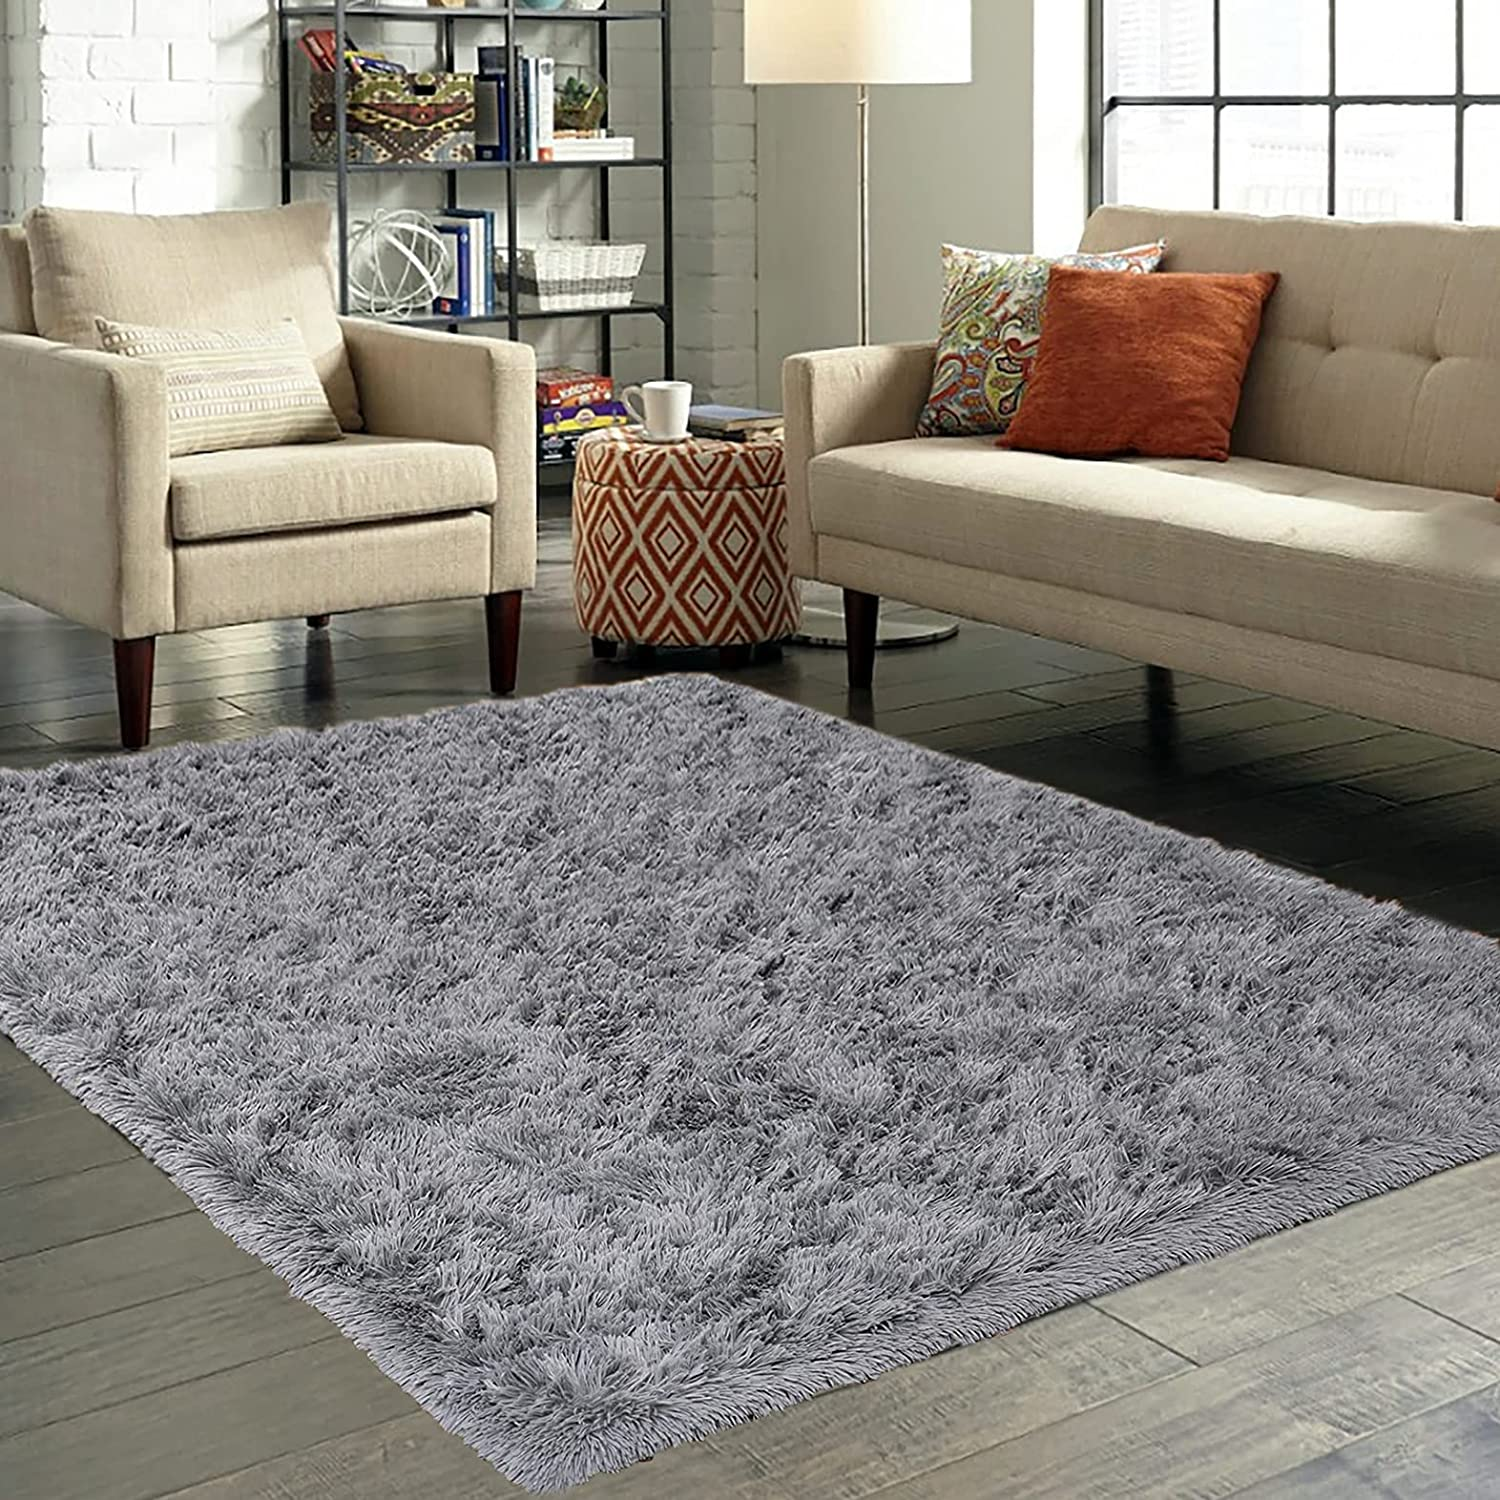 Moreuanew Modern Fluffy Area Rugs for Grey Sha Bedroom Max All items free shipping 85% OFF Plush 5x8